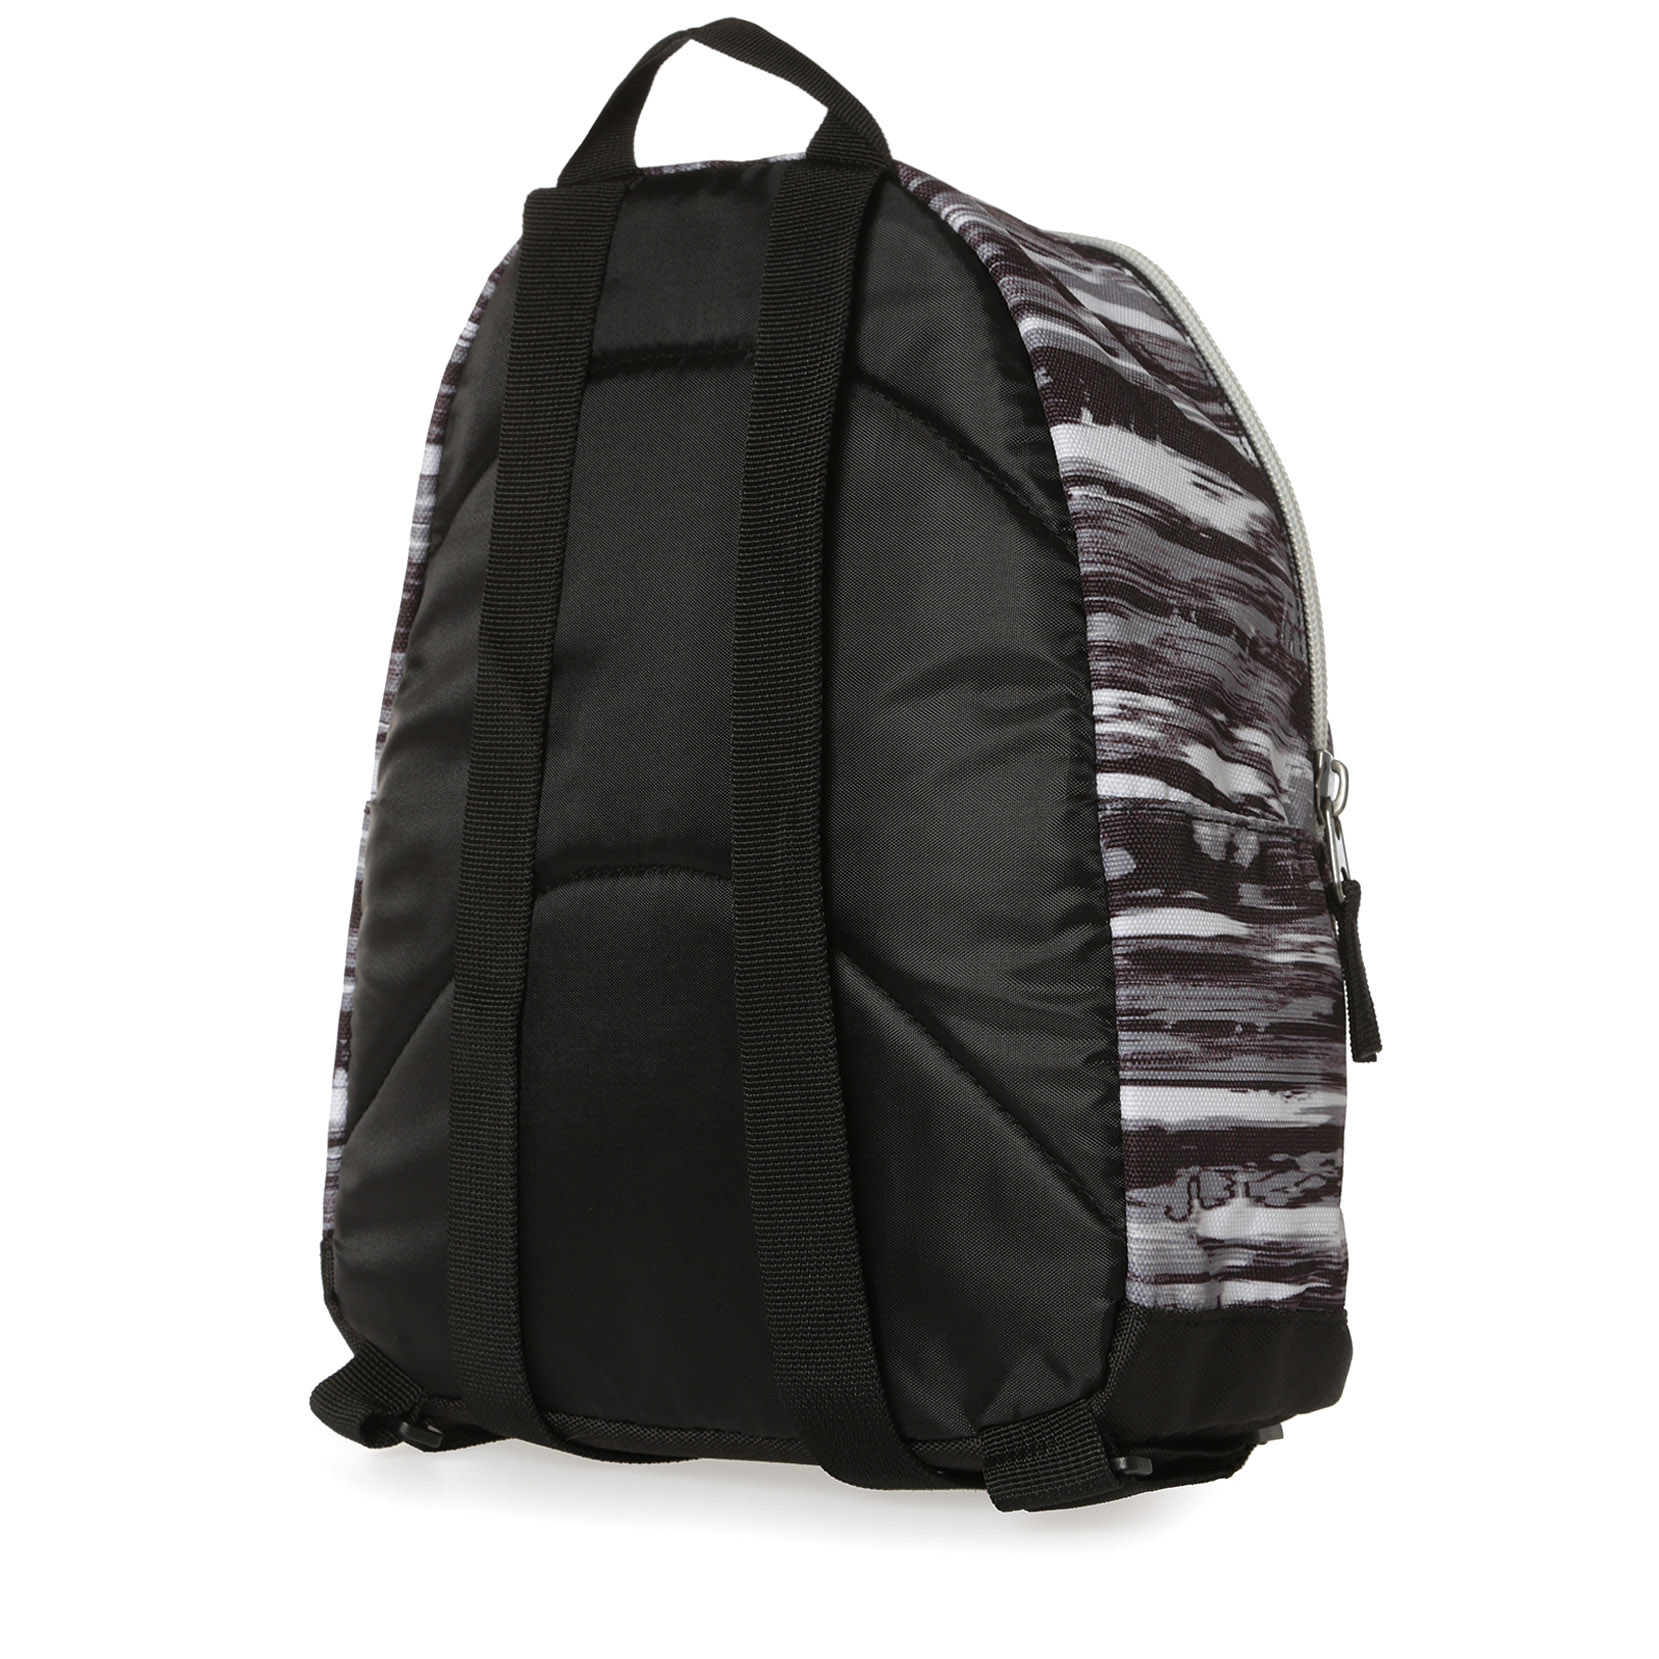 Рюкзак Mini Classic Backpack LAB91022BM | New Balance